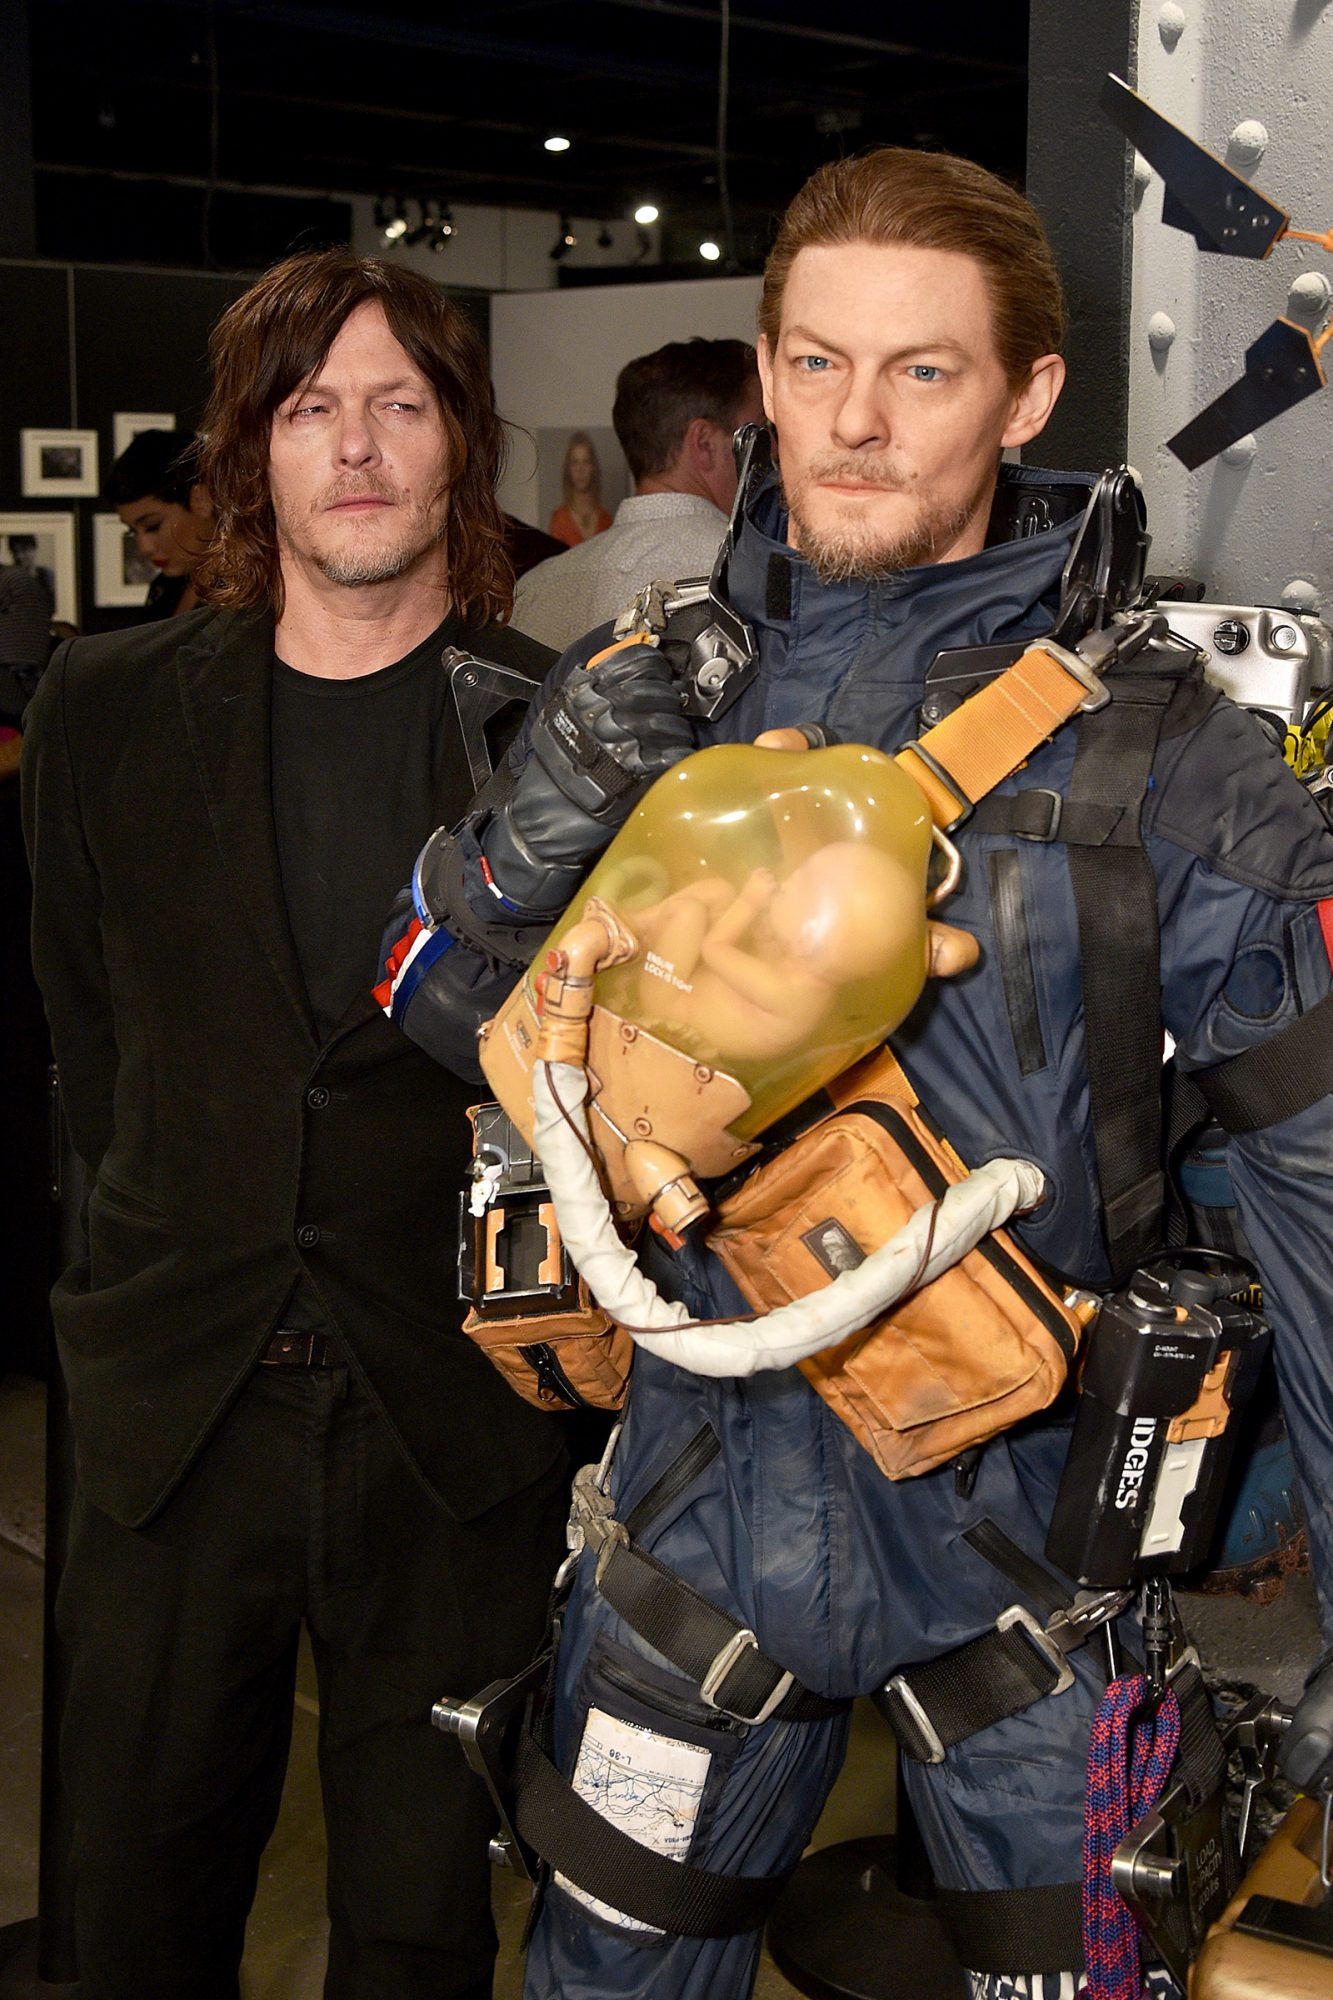 Norman Reedus attends Fractured Worlds: The Art of DEATH STRANDING on November 05, 2019 in New York City